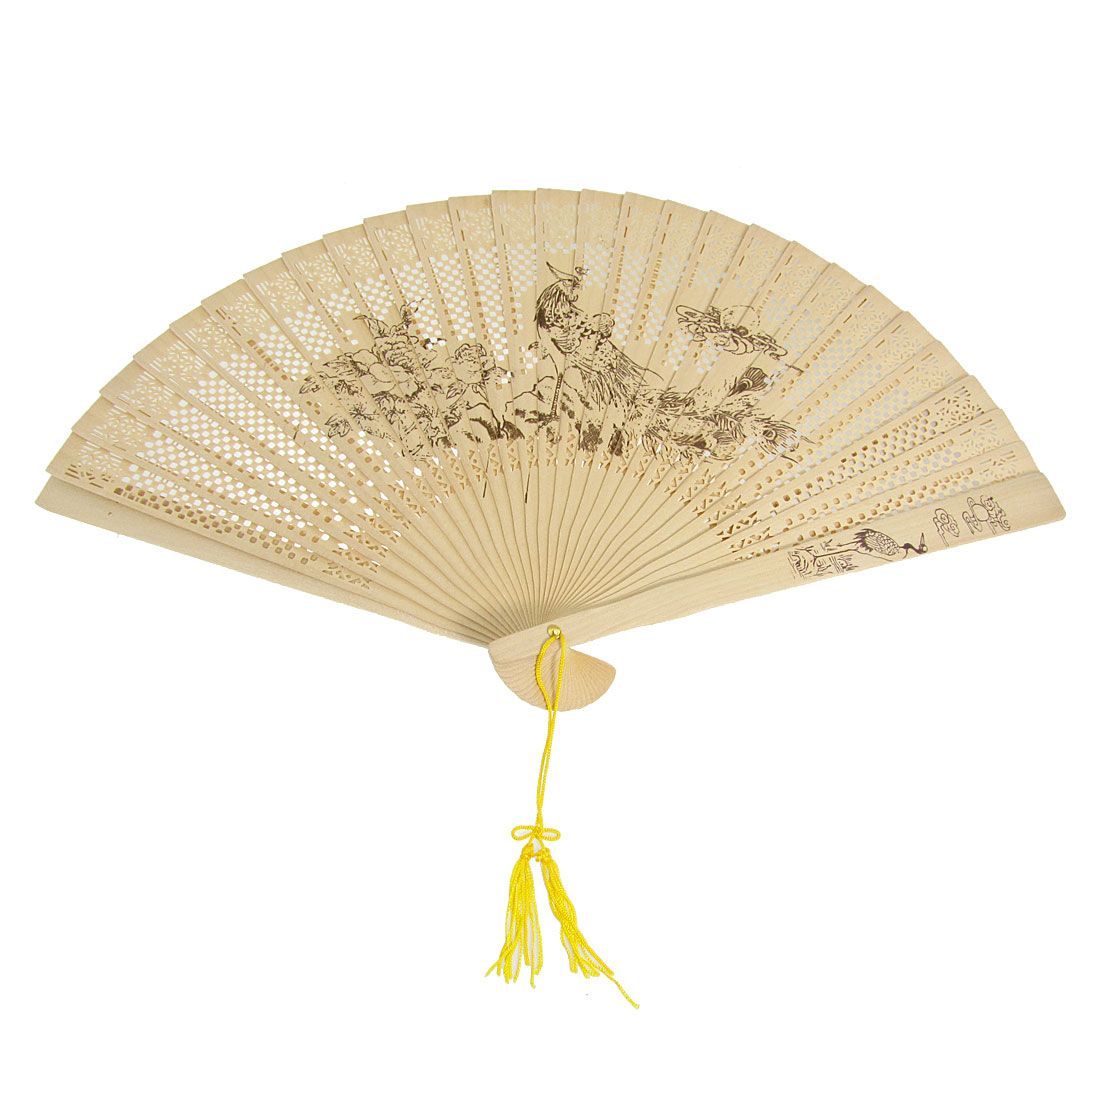 Craft Phoenix Print Folding Wooden Fragrant Hand Fan w Tassel